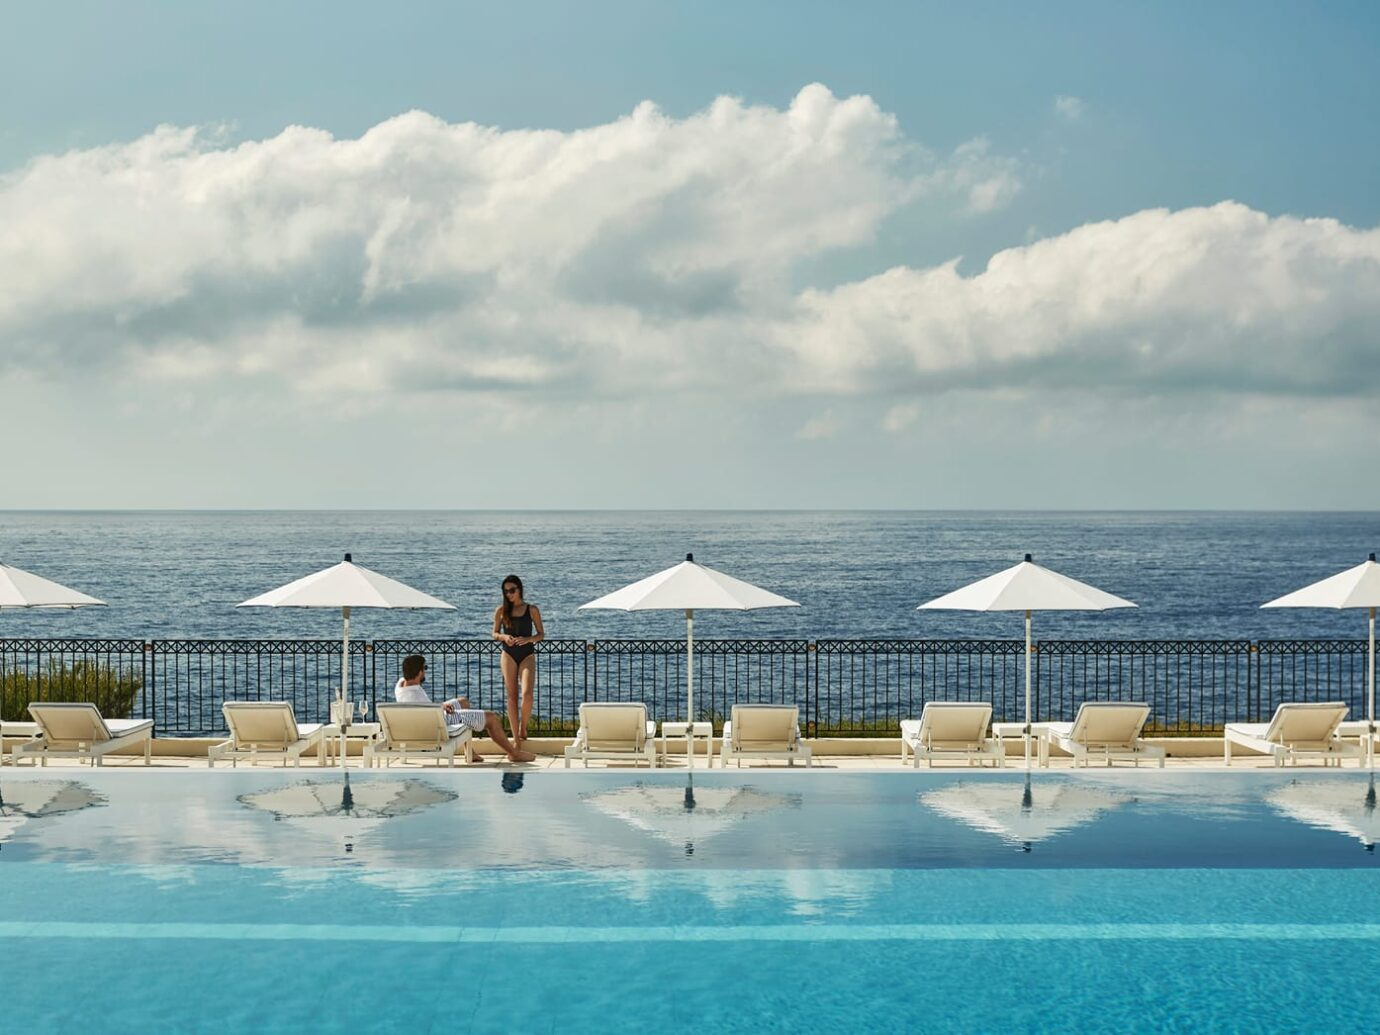 Pool at Grand-Hôtel du Cap-Ferrat